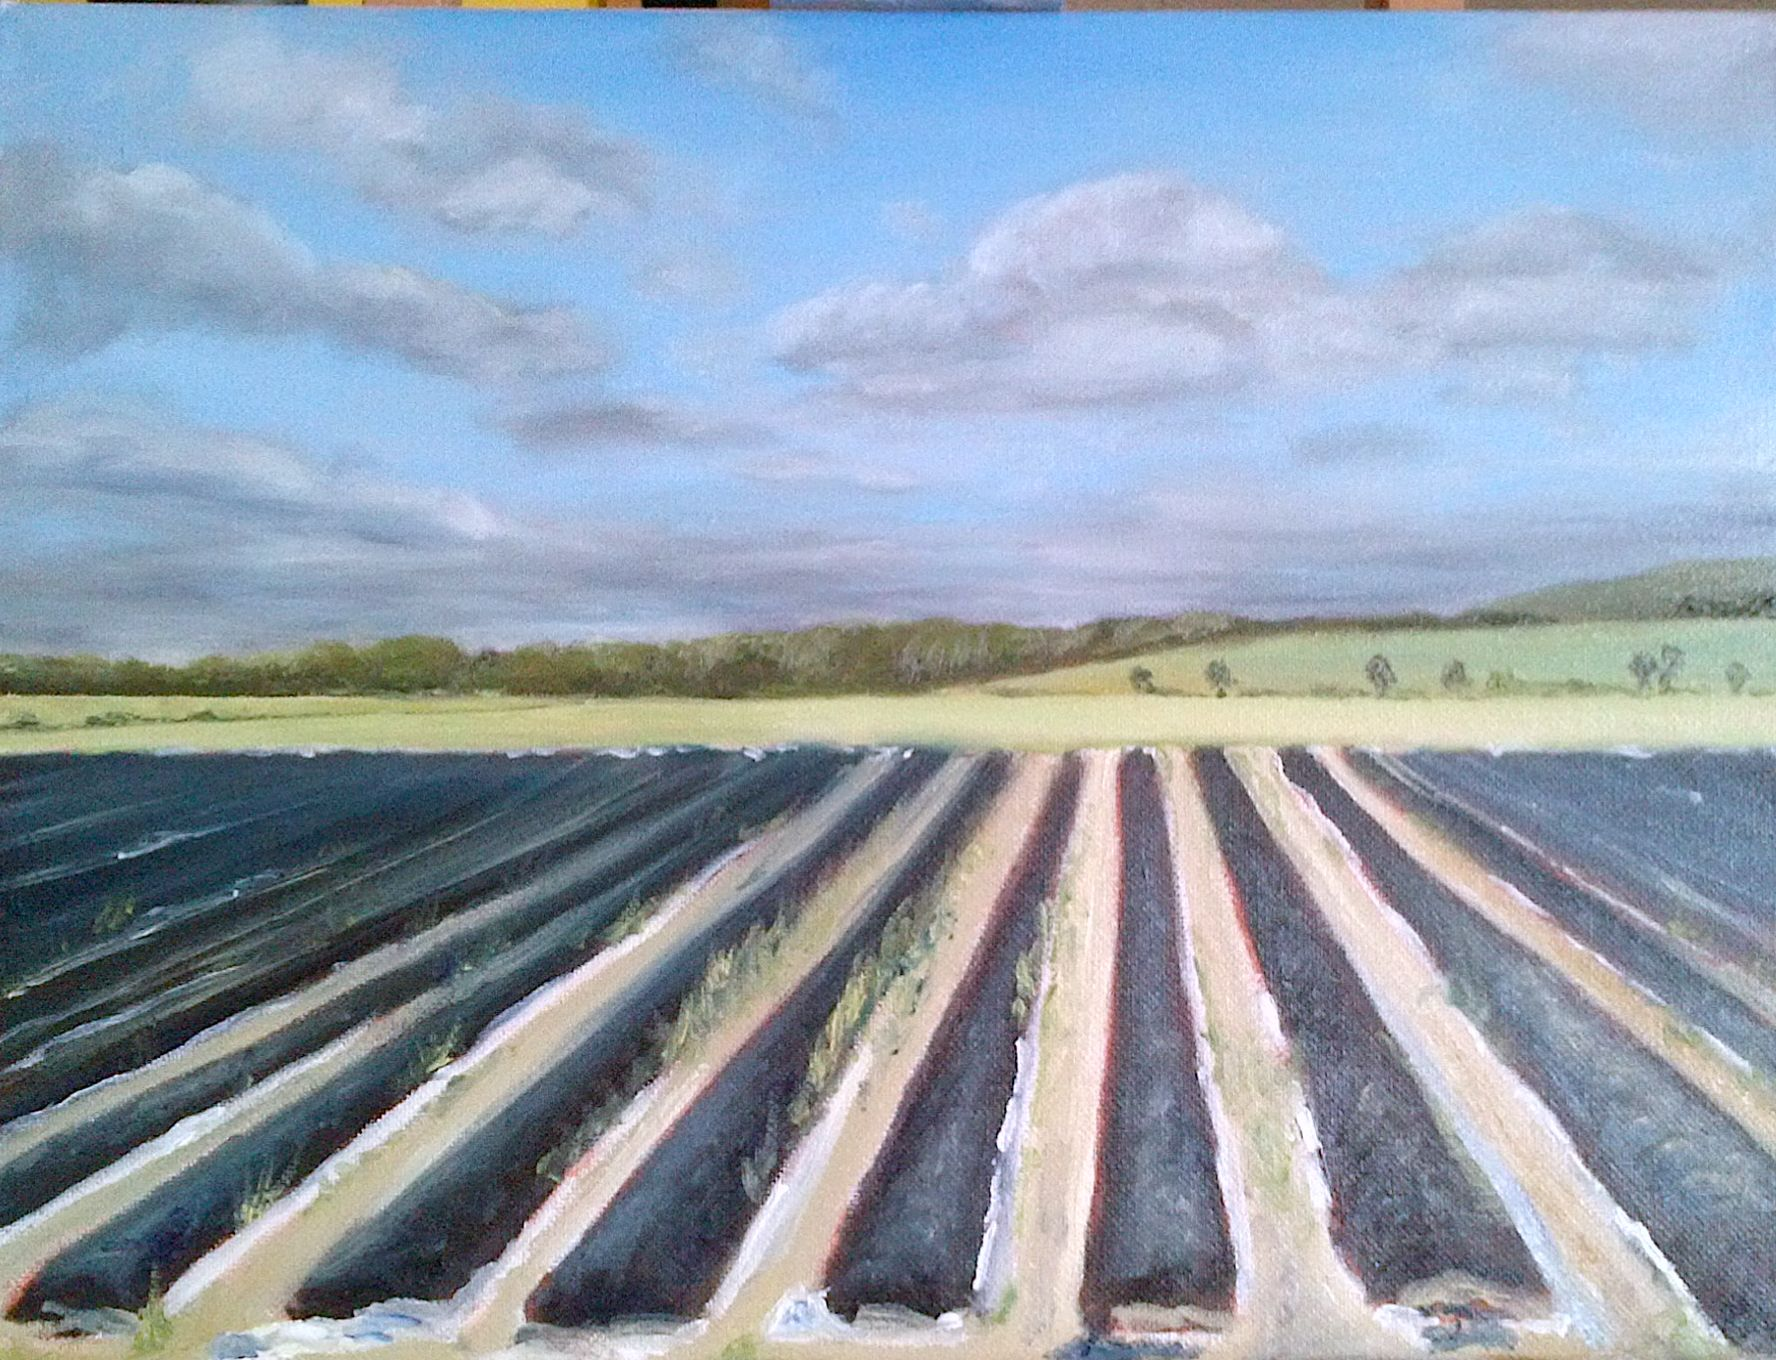 Spargelland/ Asparagus land. Öl auf Leinwand/ Oil on canvas. 30 x 40 cm.